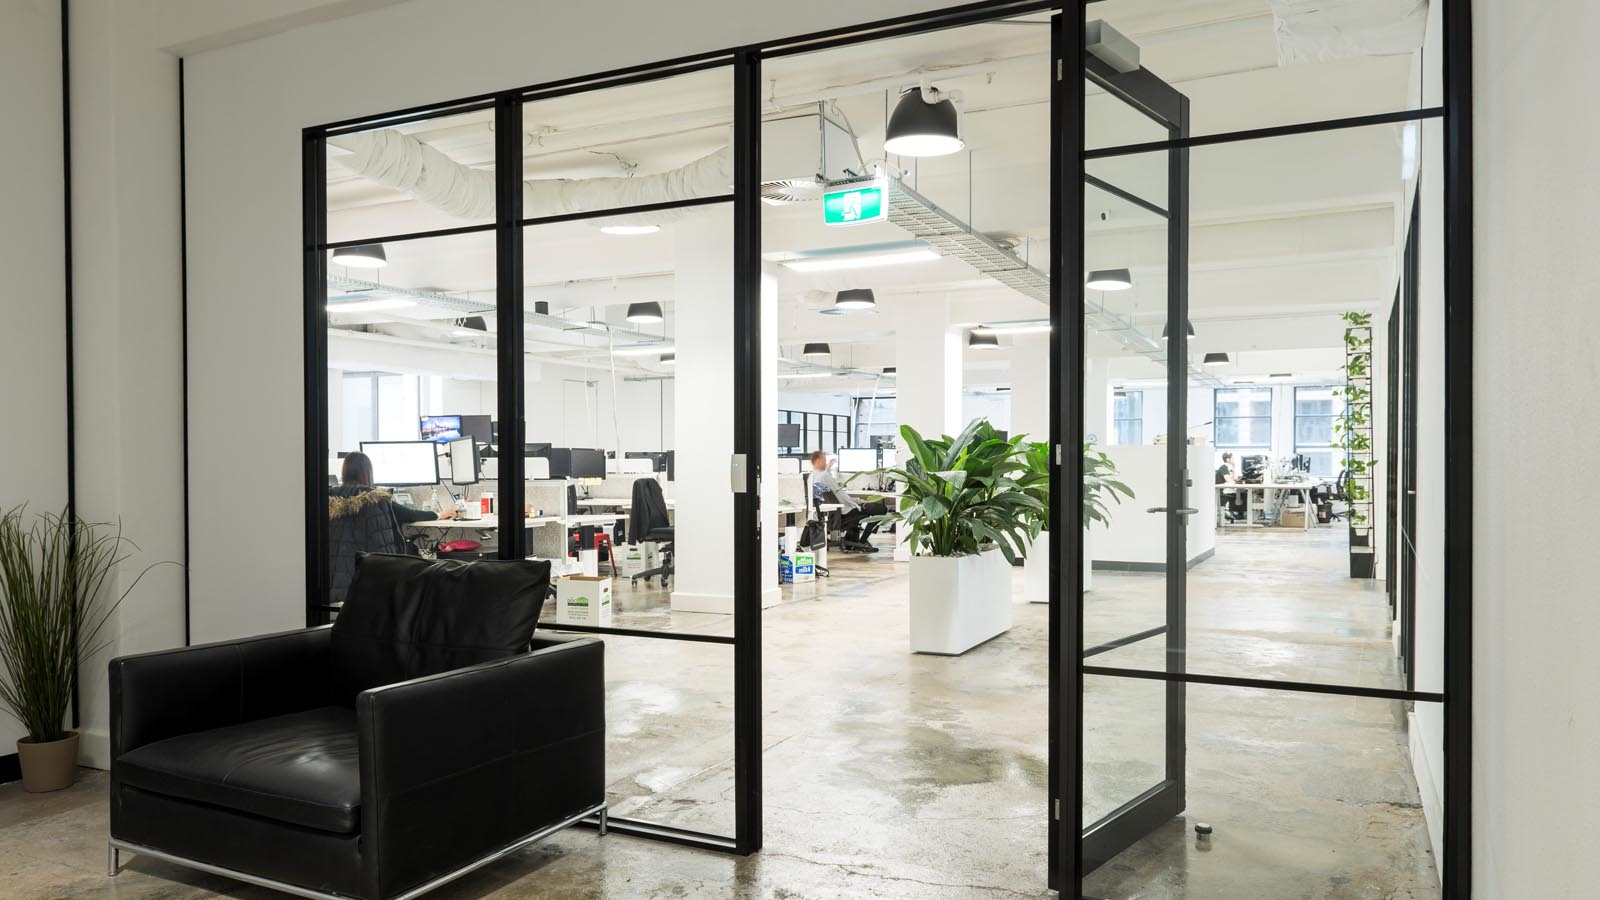 Sliding Doors vs. Hinged Doors in the Office Environment